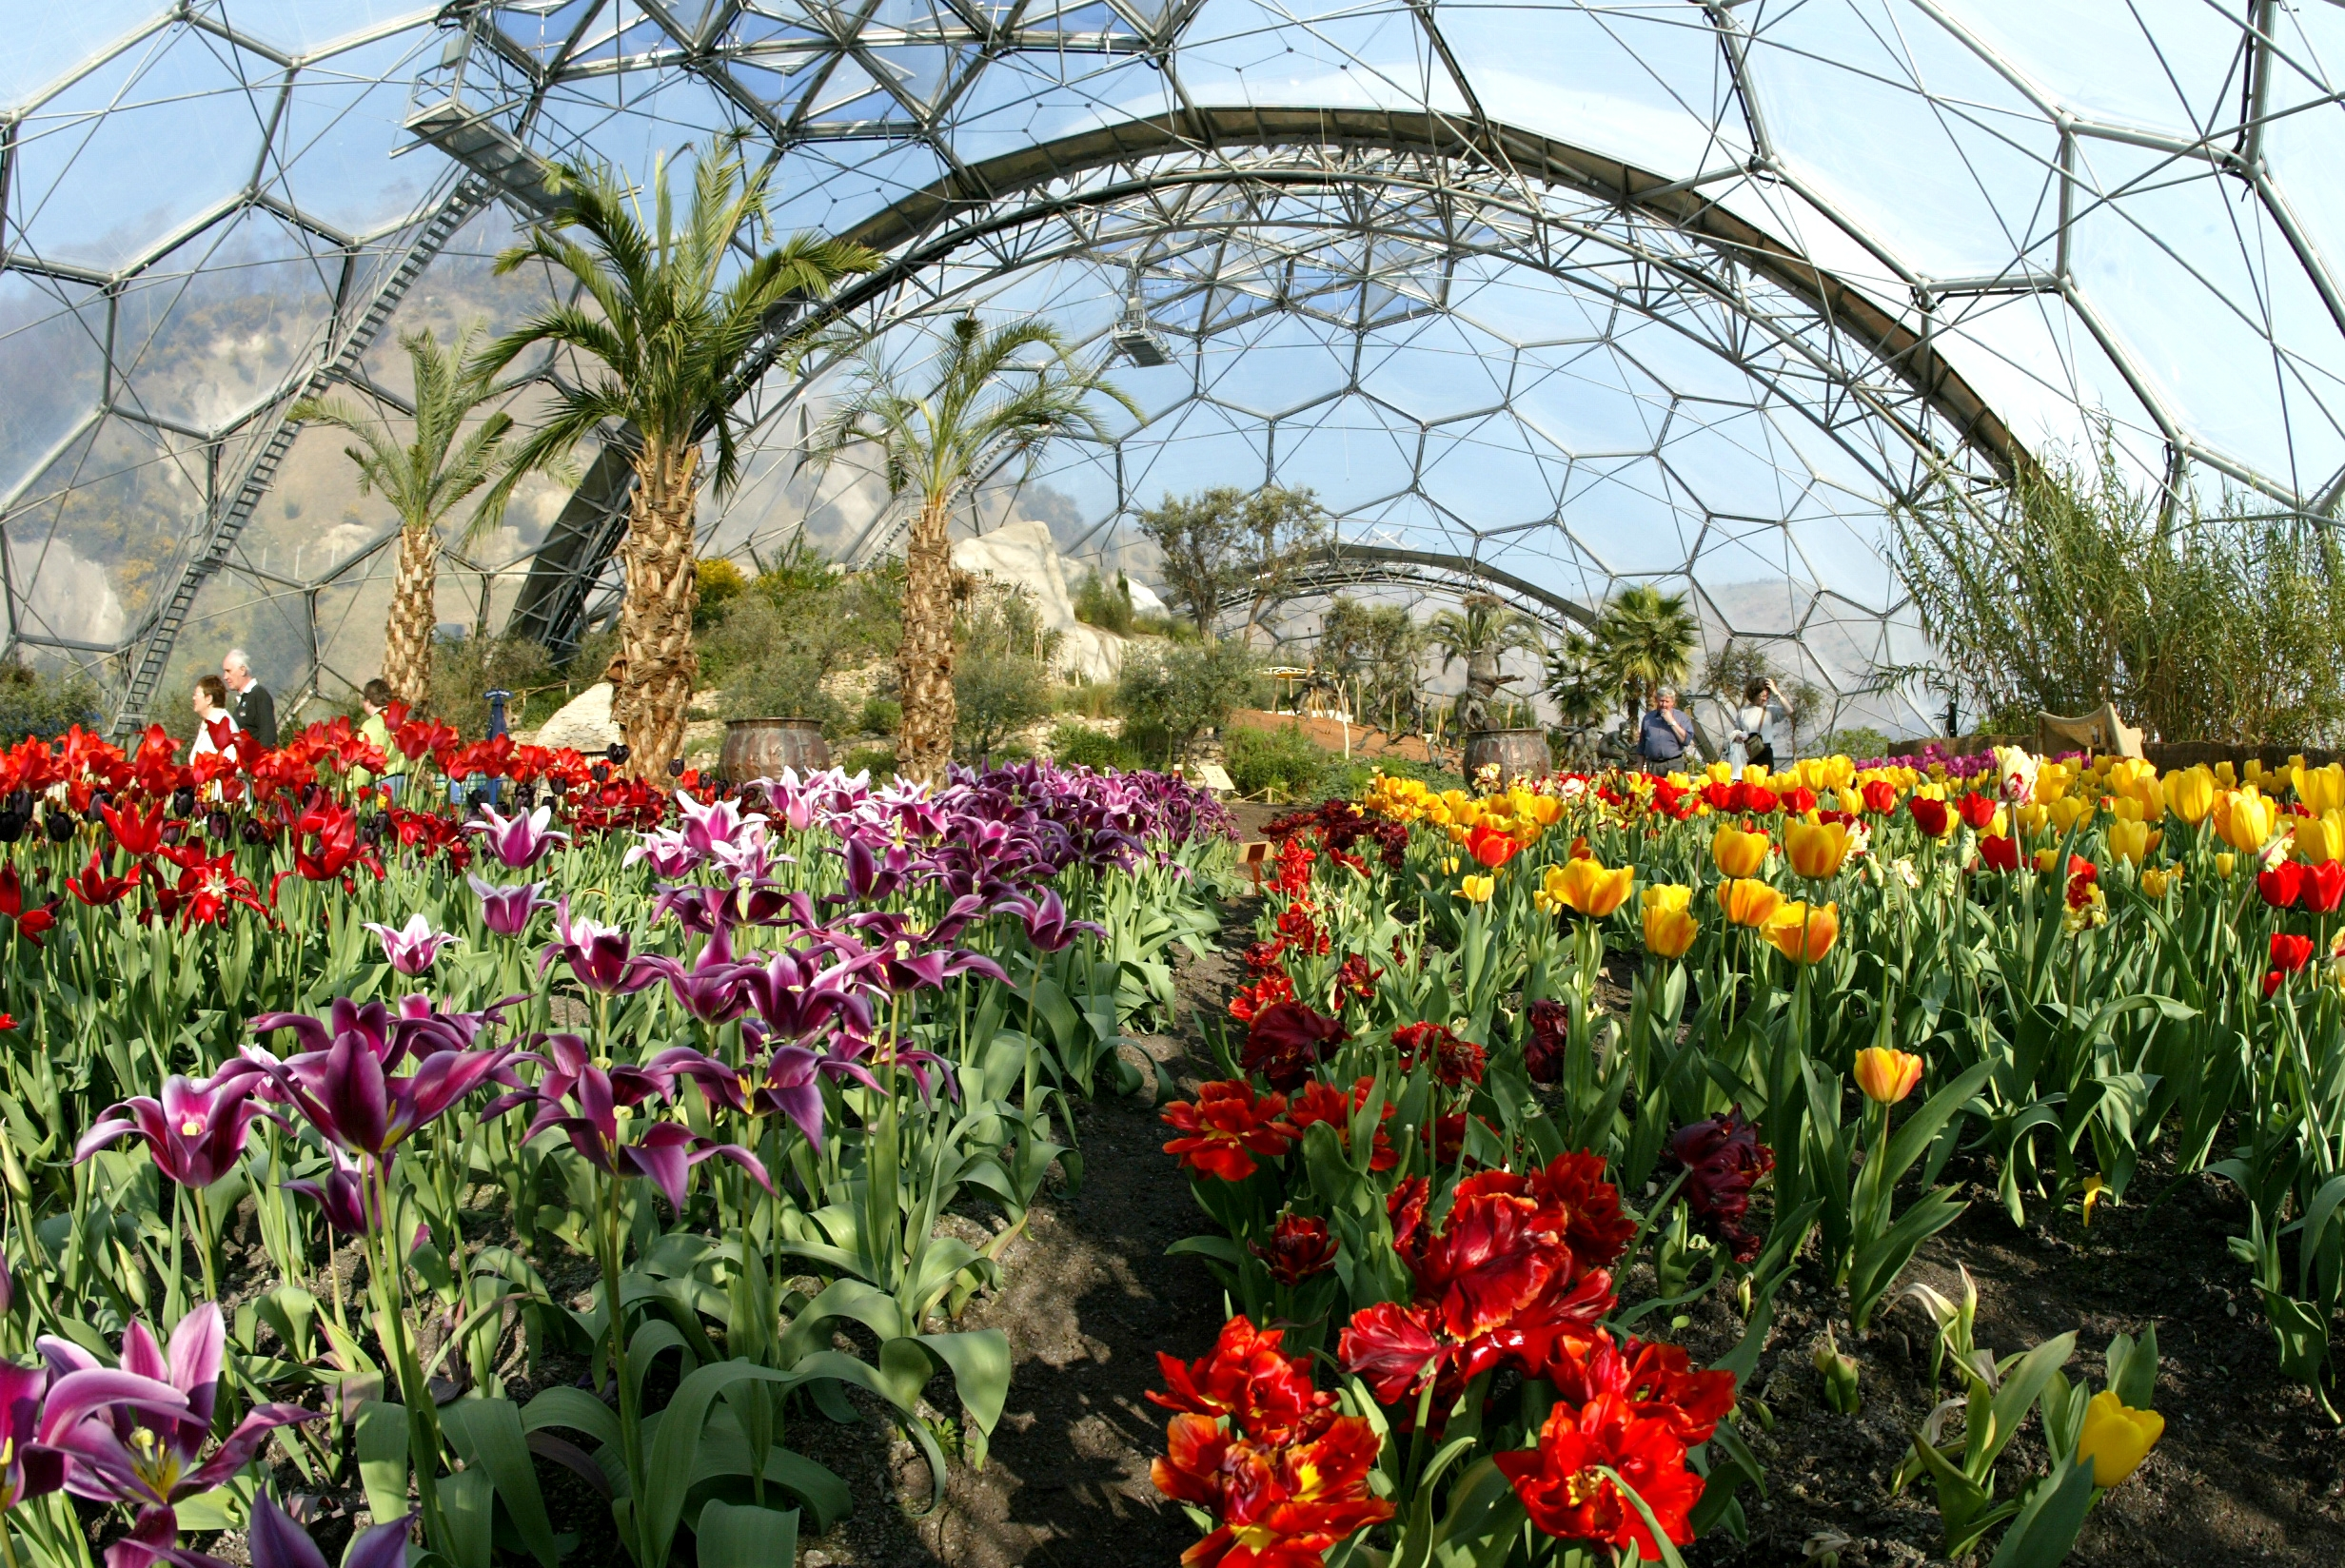 8a_-wideshot-tulips-warm-temperate-biome-credit-the-eden-project.jpg